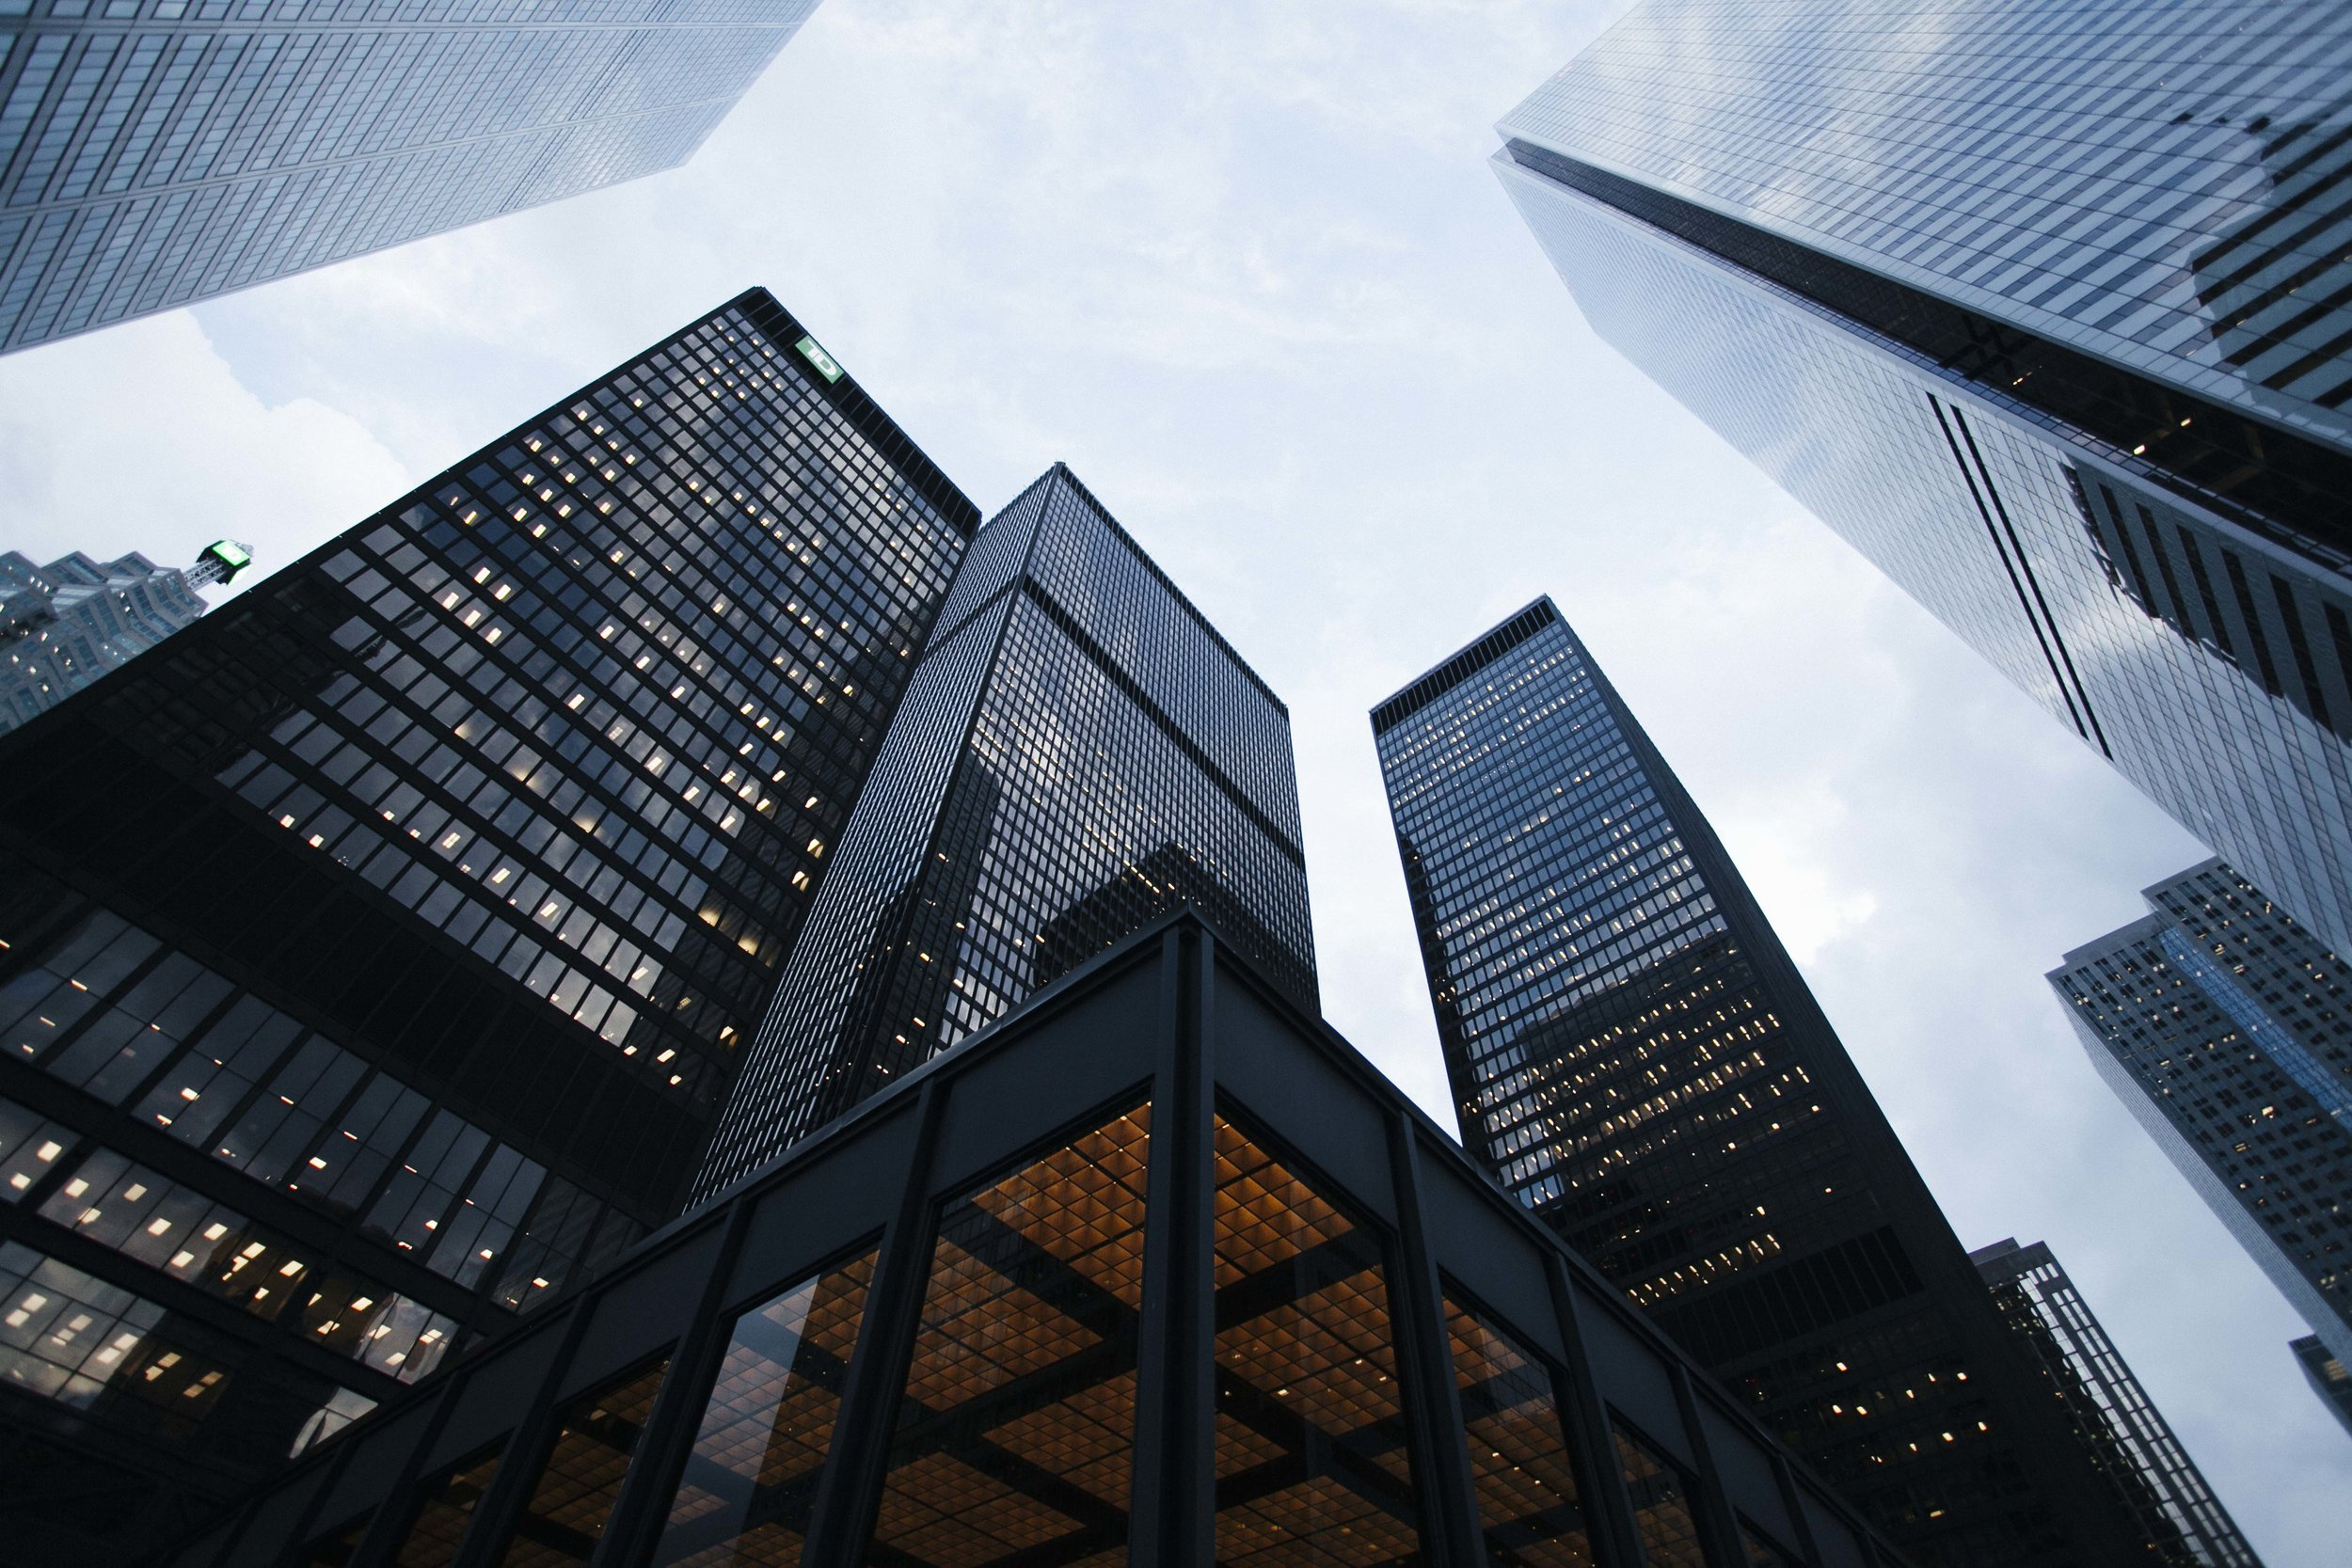 Looking up at tall buildings in a city